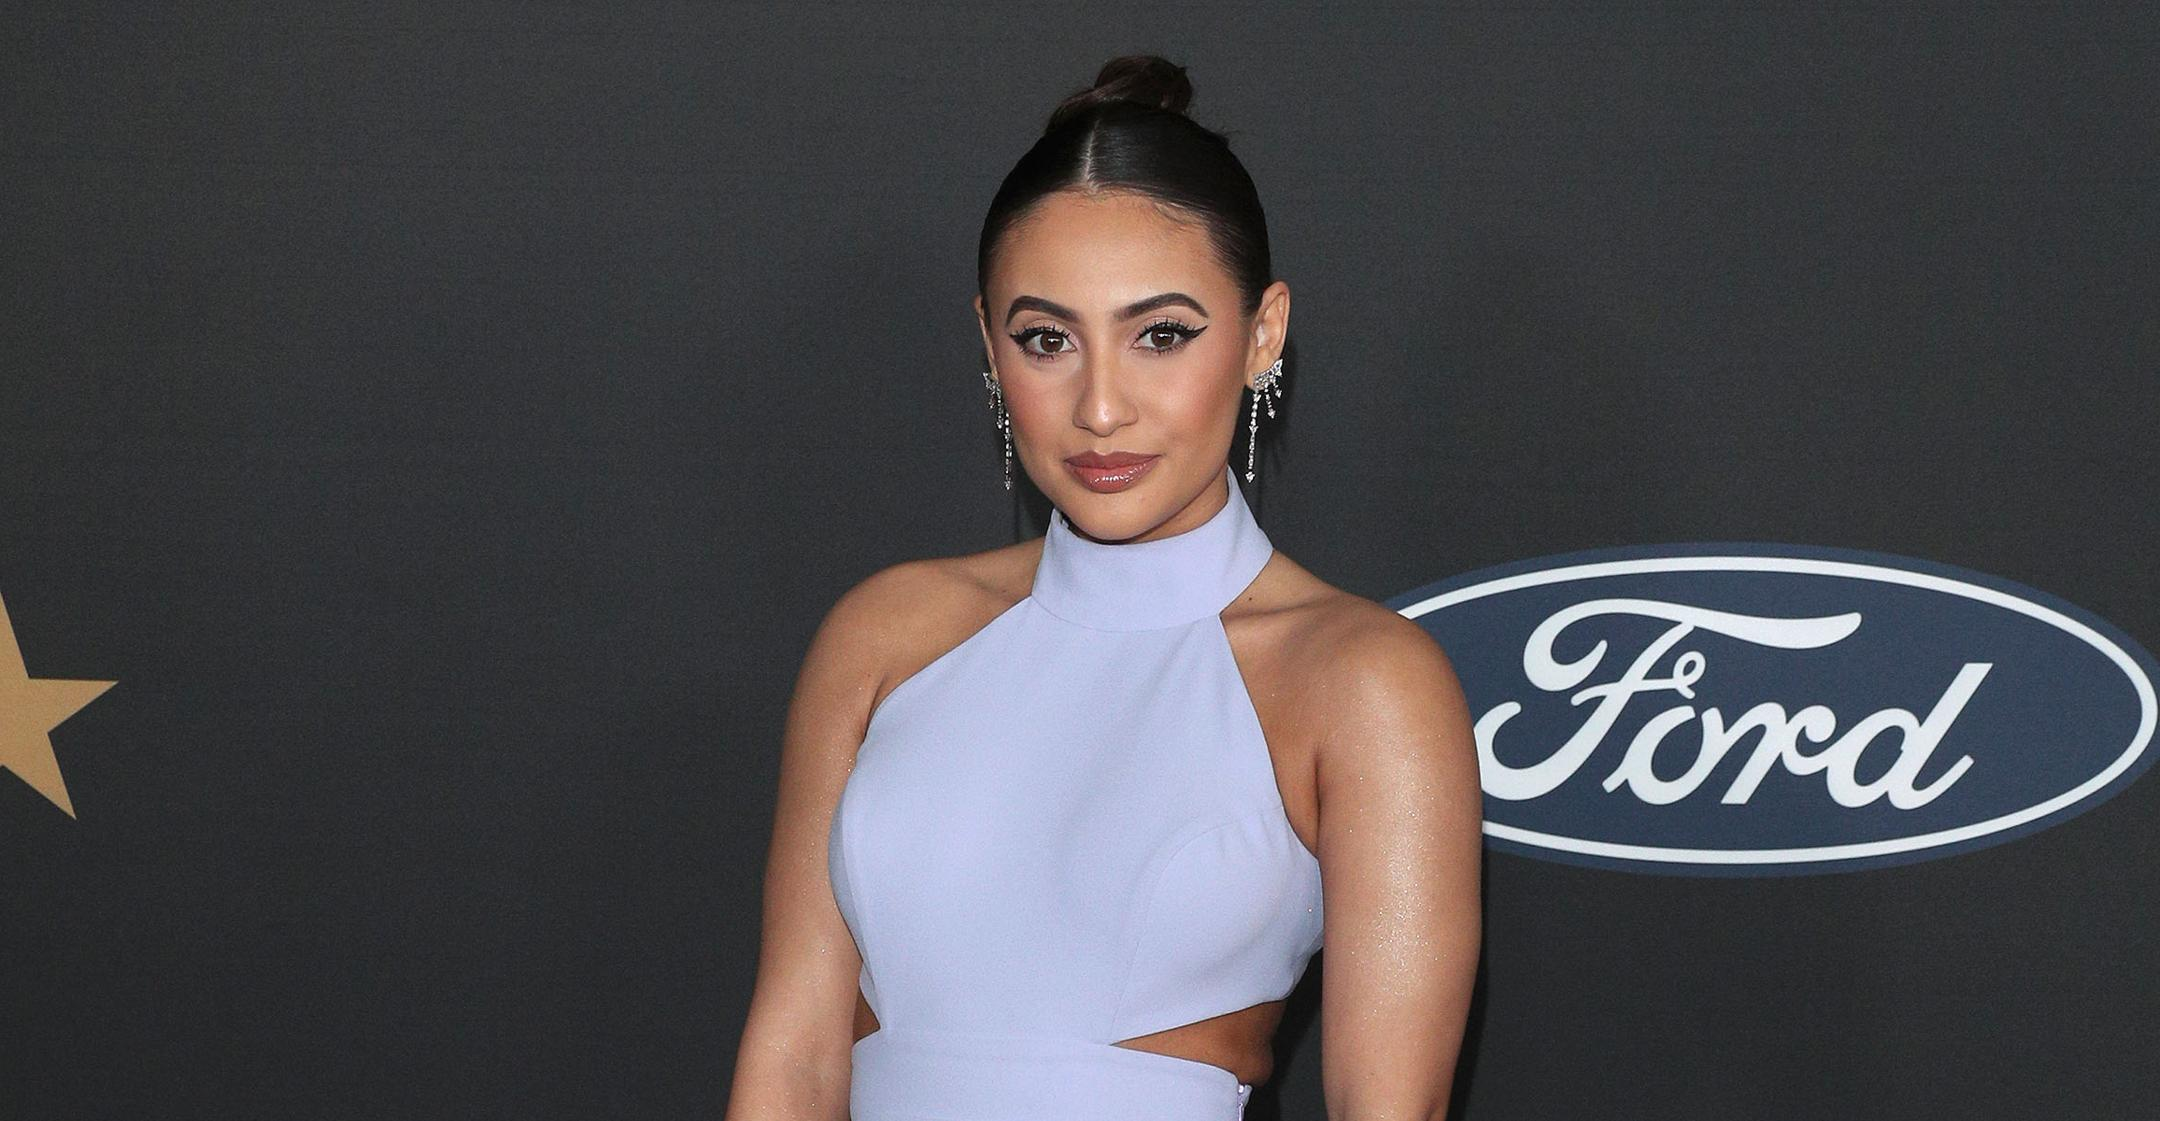 actress francia raisa admits freezing her eggs was draining and rough process